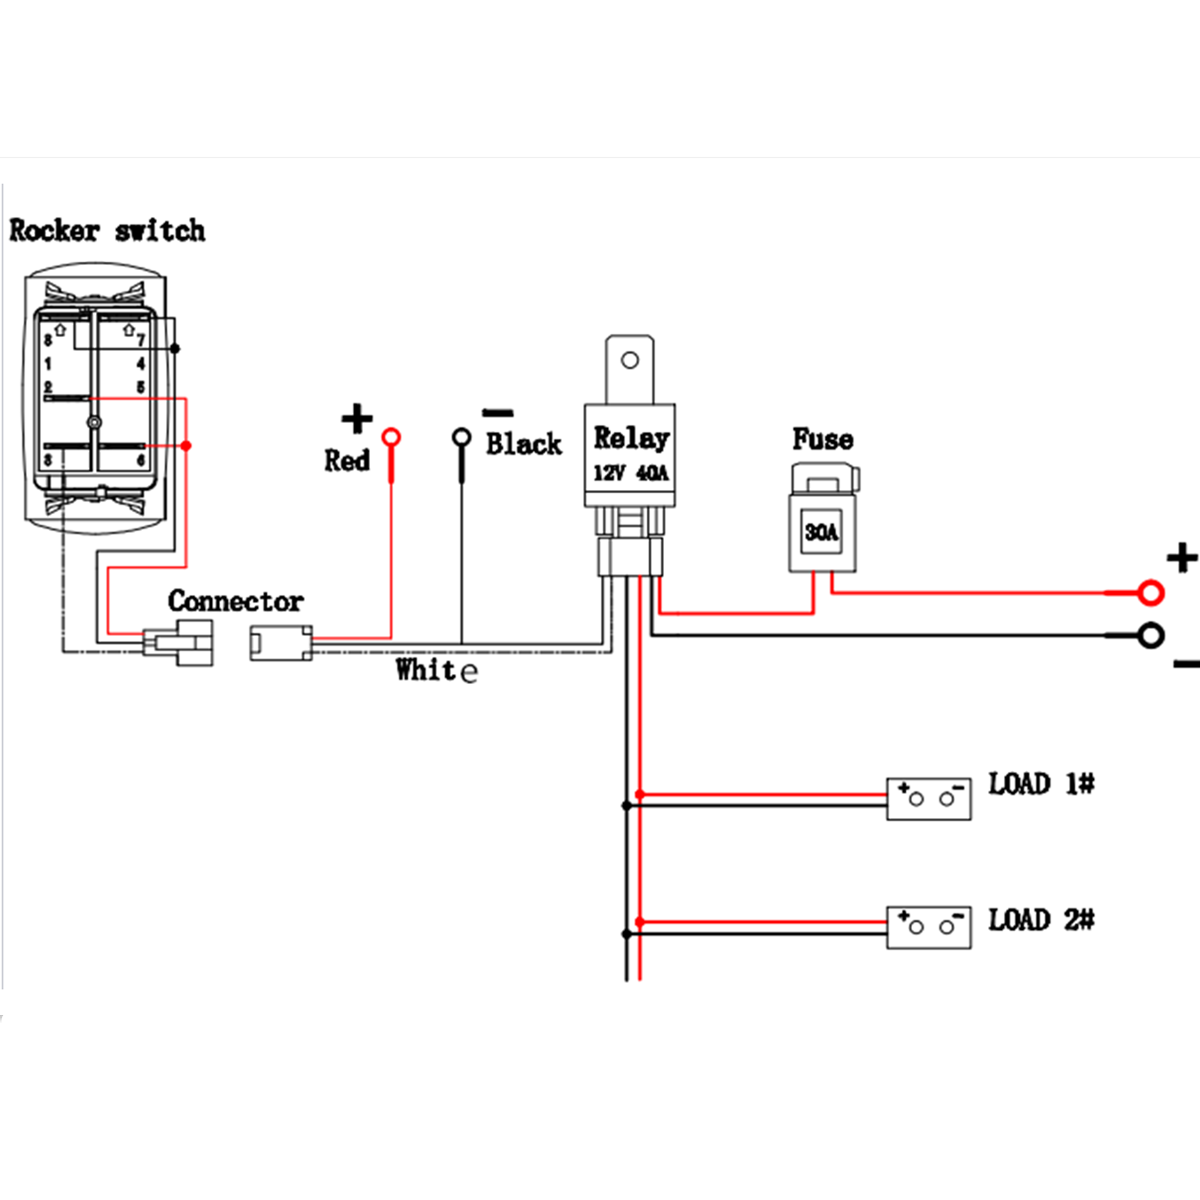 Pole Relay Wiring Diagram Also Ceiling Fan Light Switch Taurus Cooling Free Download 5 Wire Schema Diagrams